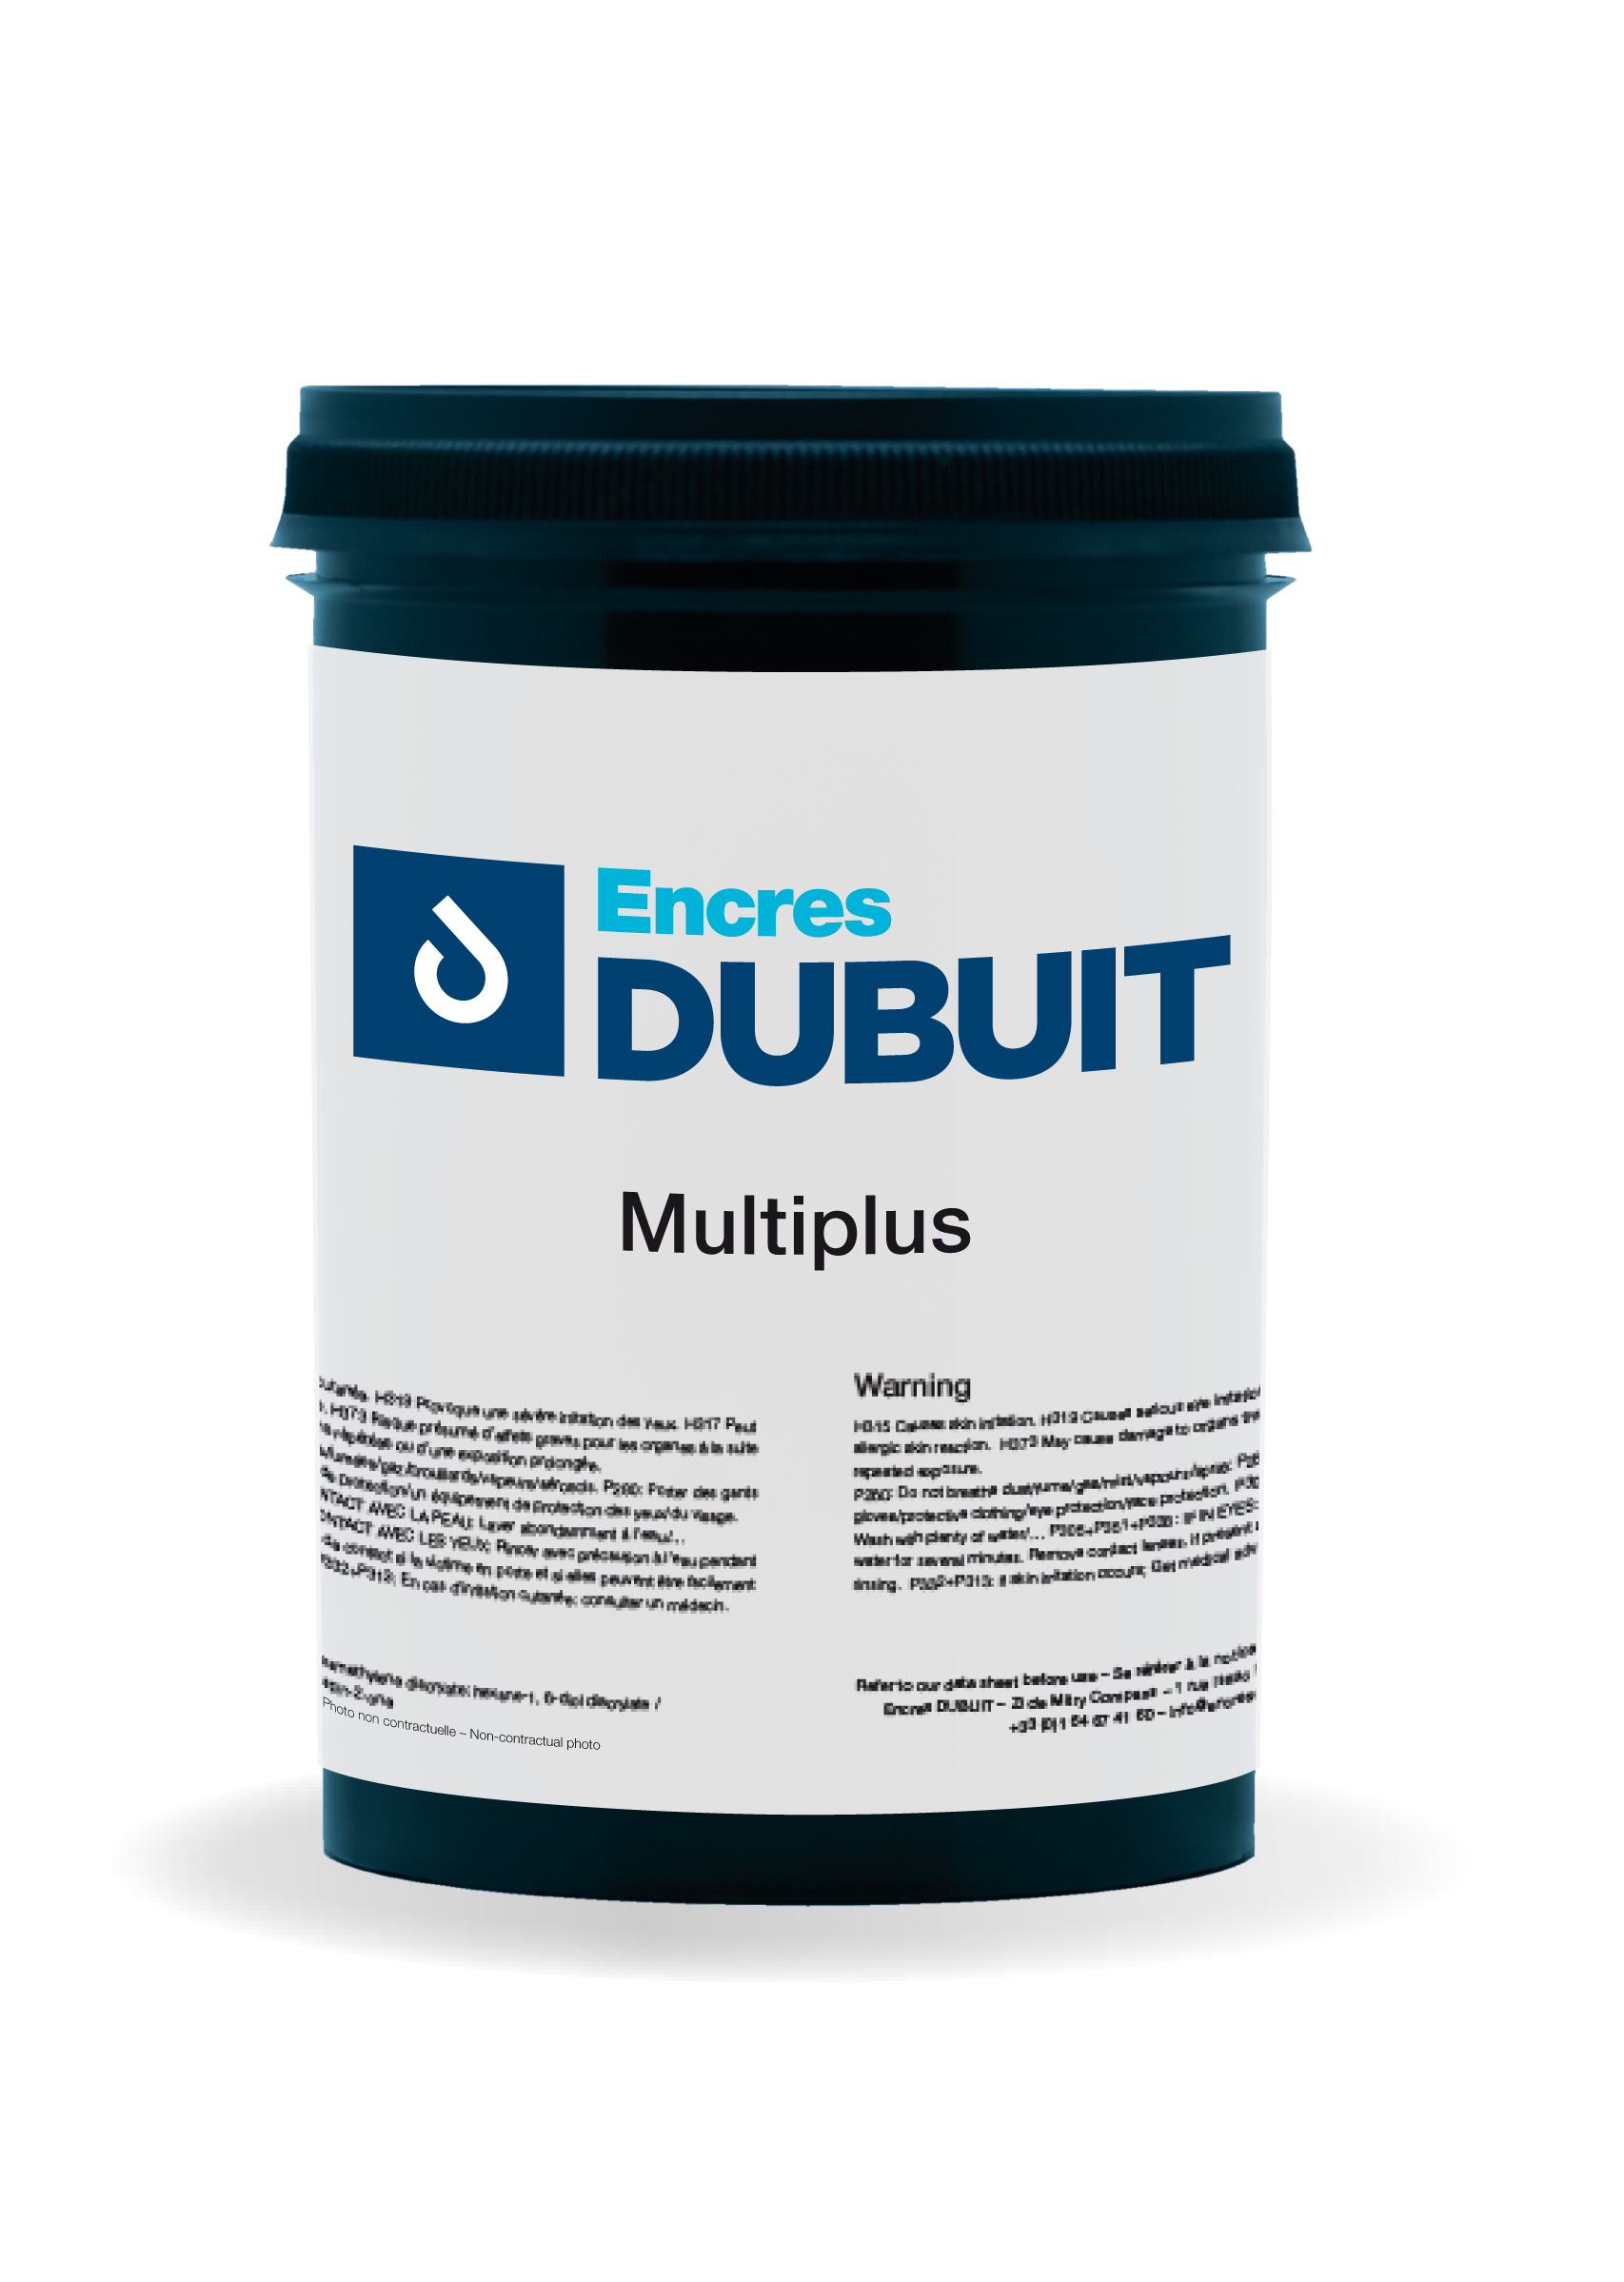 Serie Multiplus Encres DUBUIT UV Screen Printing Ink